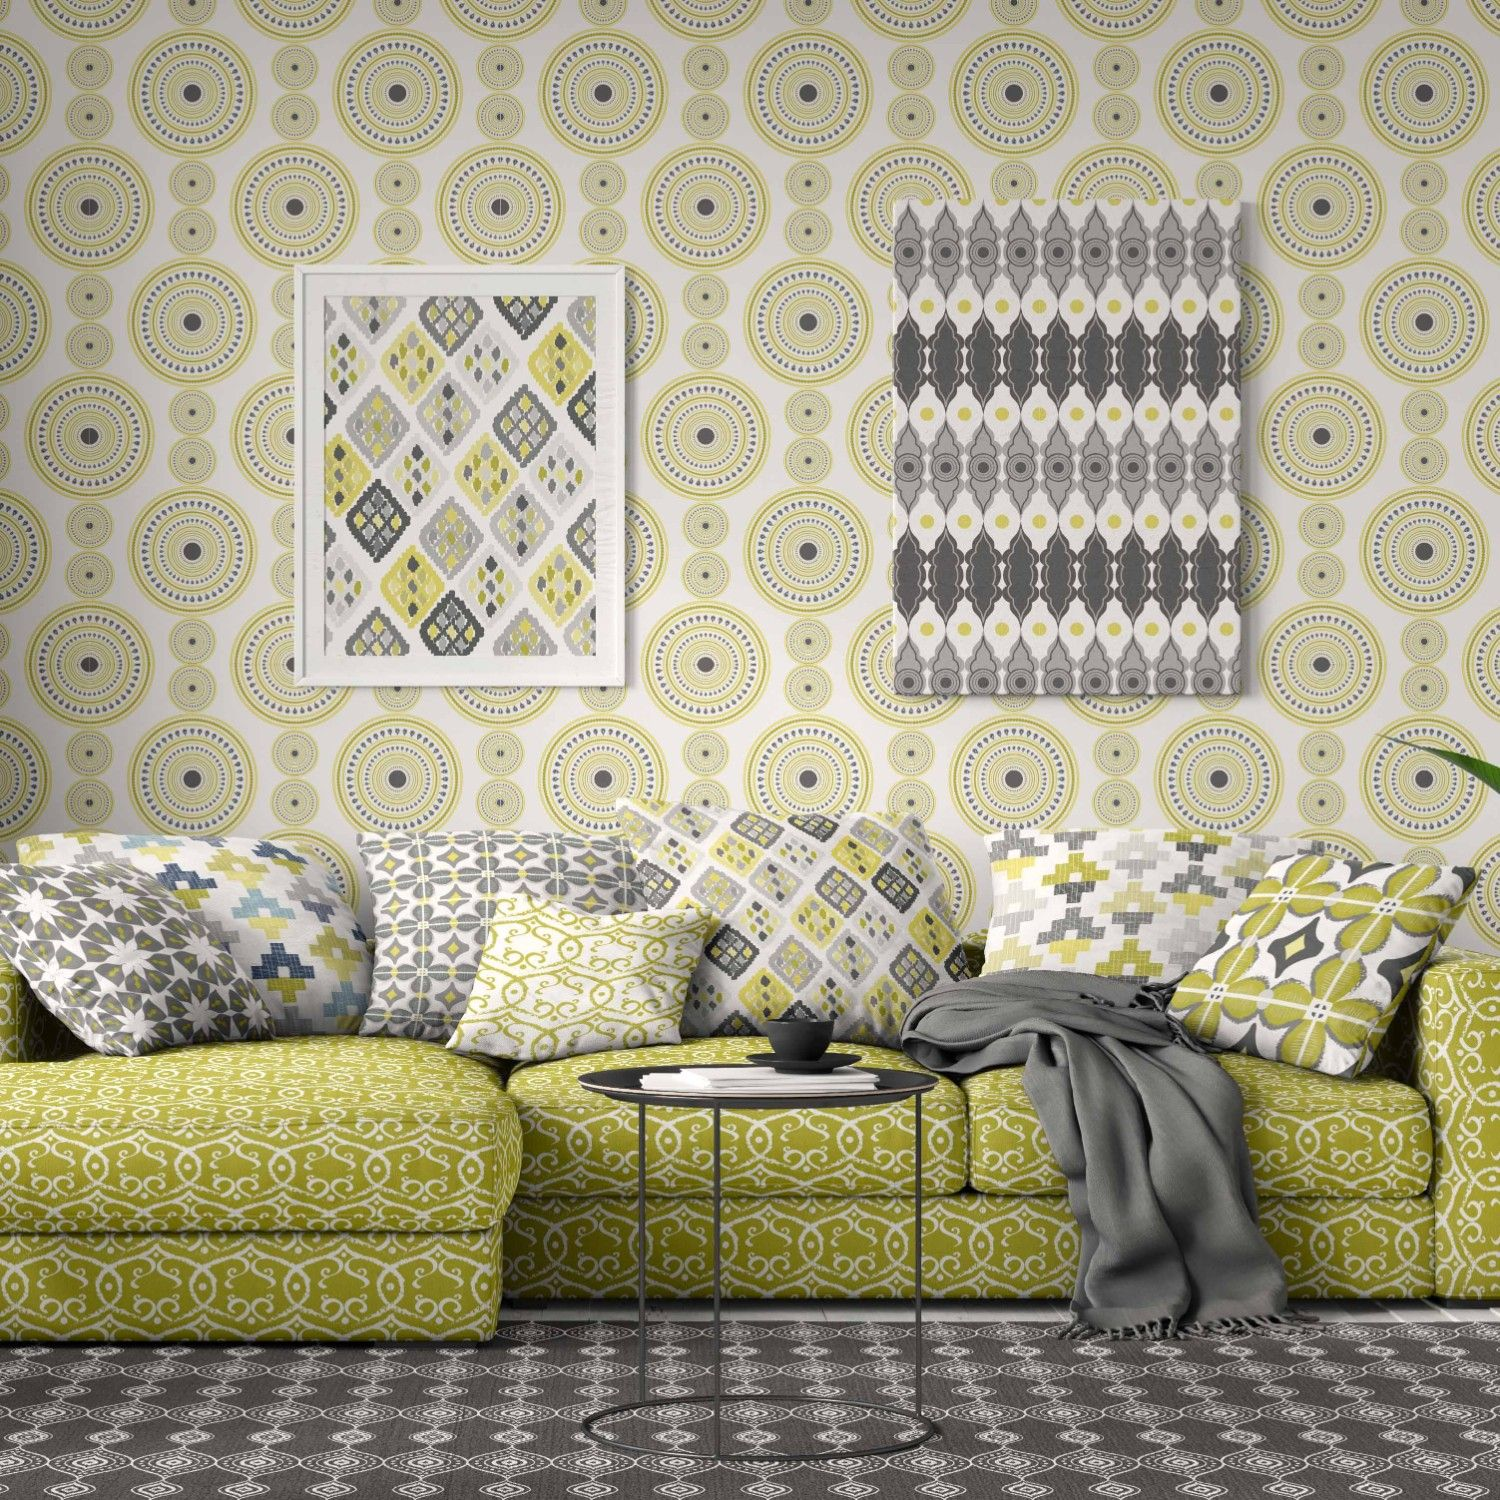 la paradiso concept wallpaper artwork couch upholstery and cushions